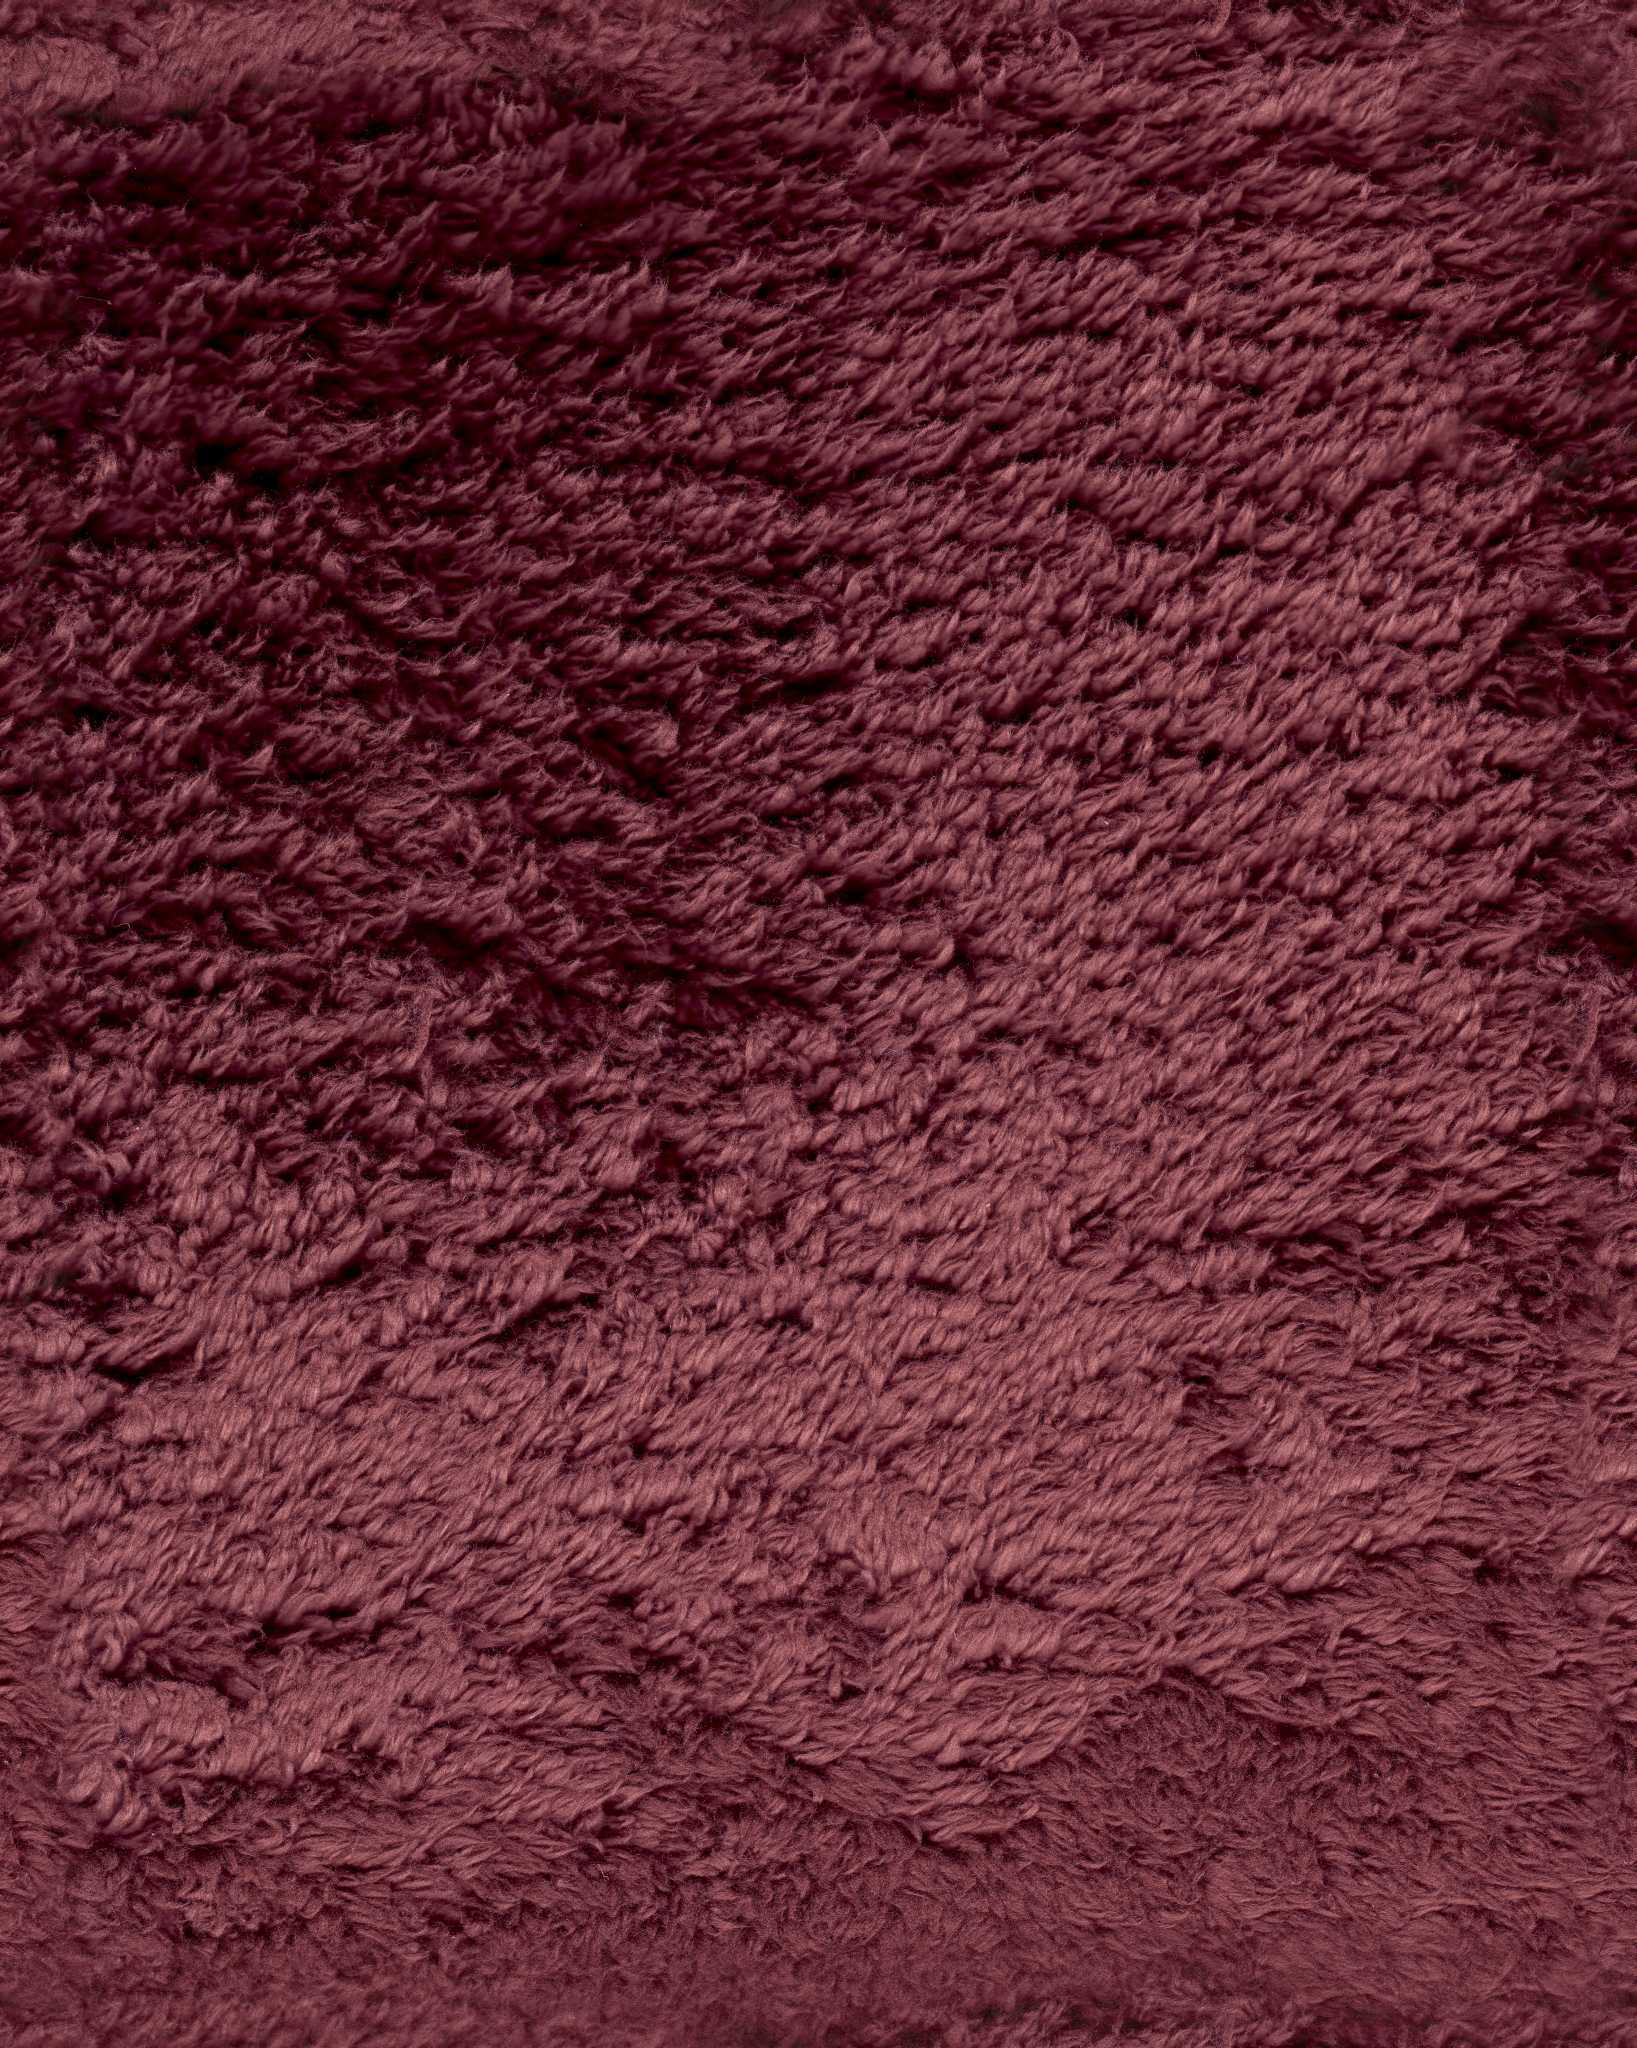 Carpet Texture Red Carpet ruffled Seamless Texture with